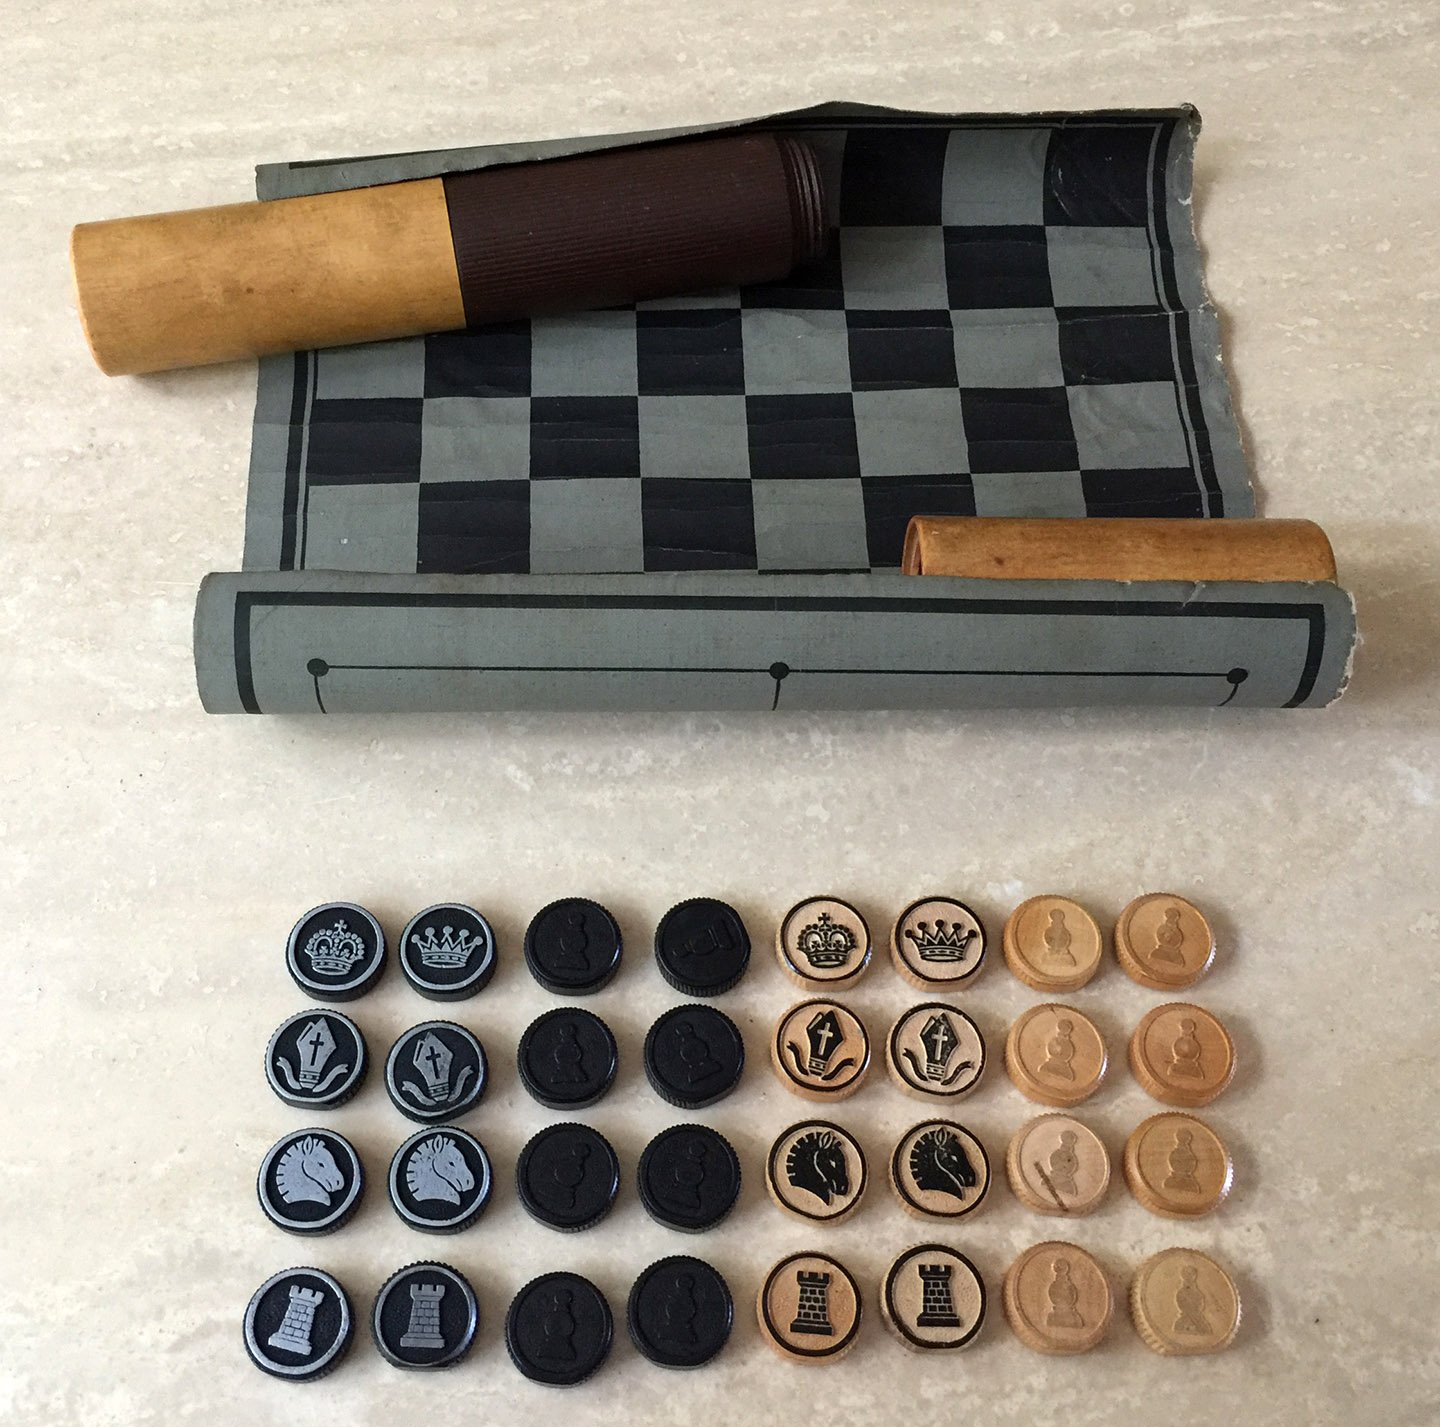 Vintage German Chess, Draughts, Nine Man Morris Portable Games Kit